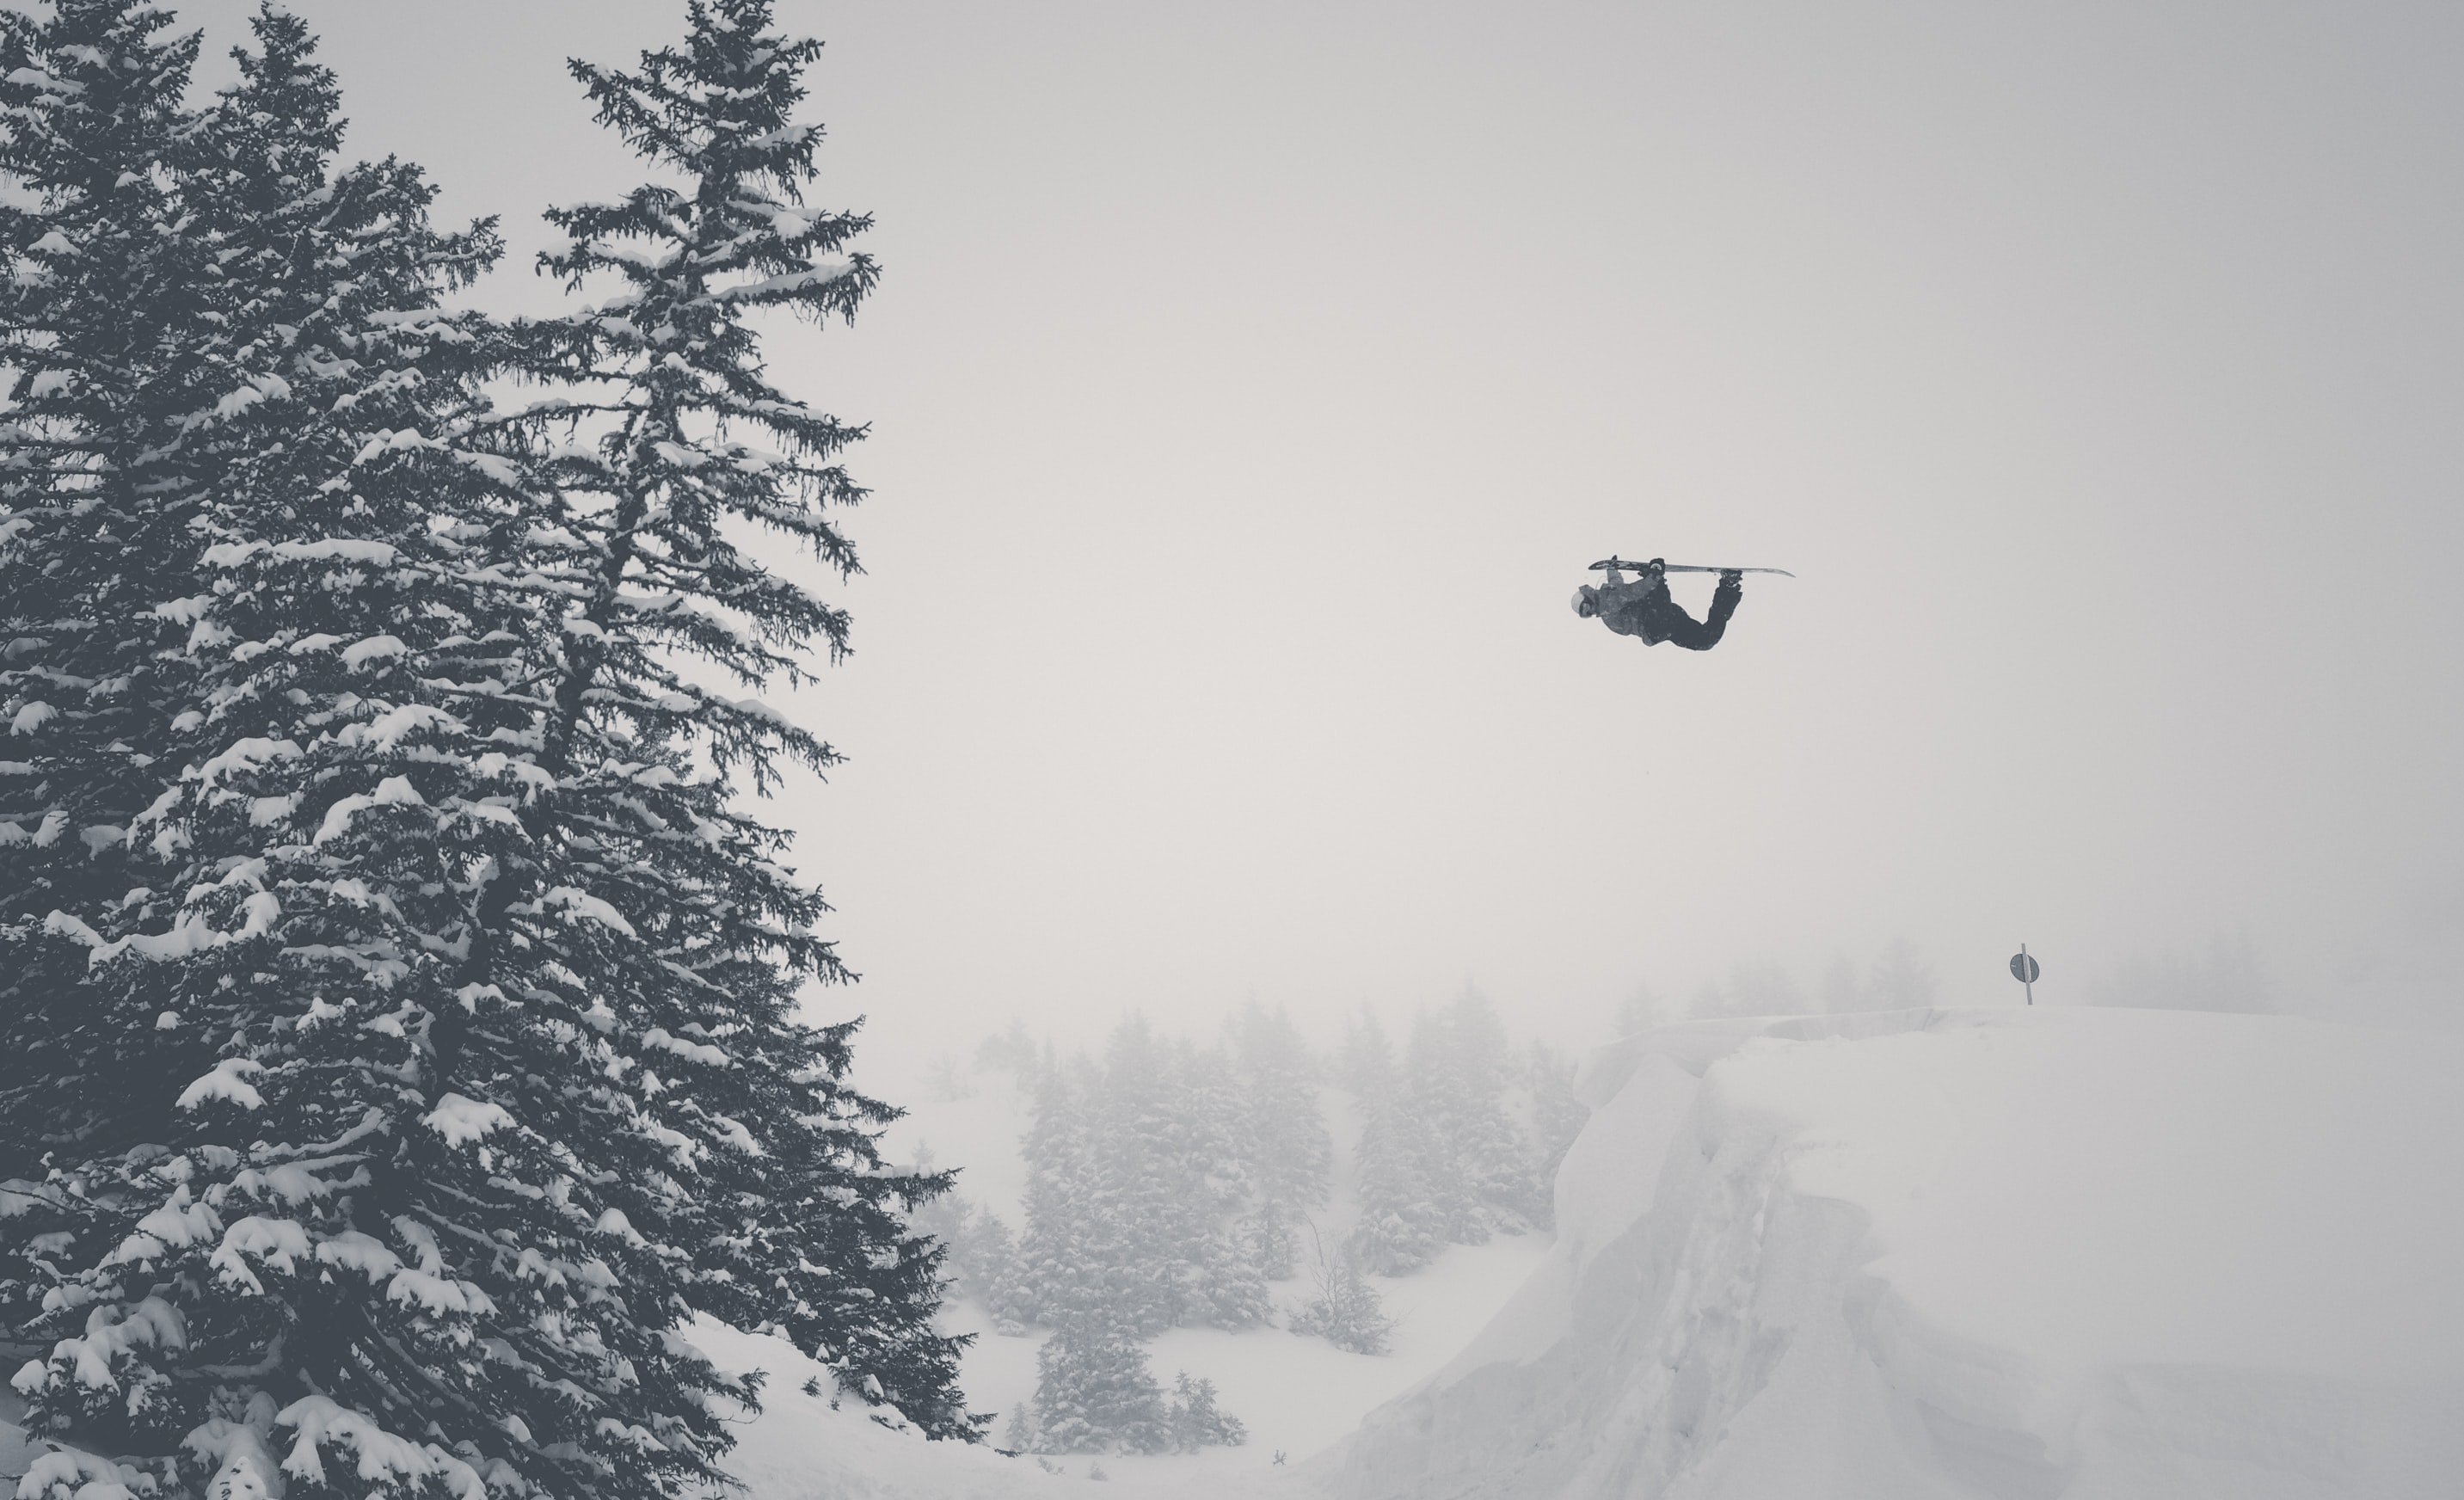 A drone flying in the snow along a tree line in black and white